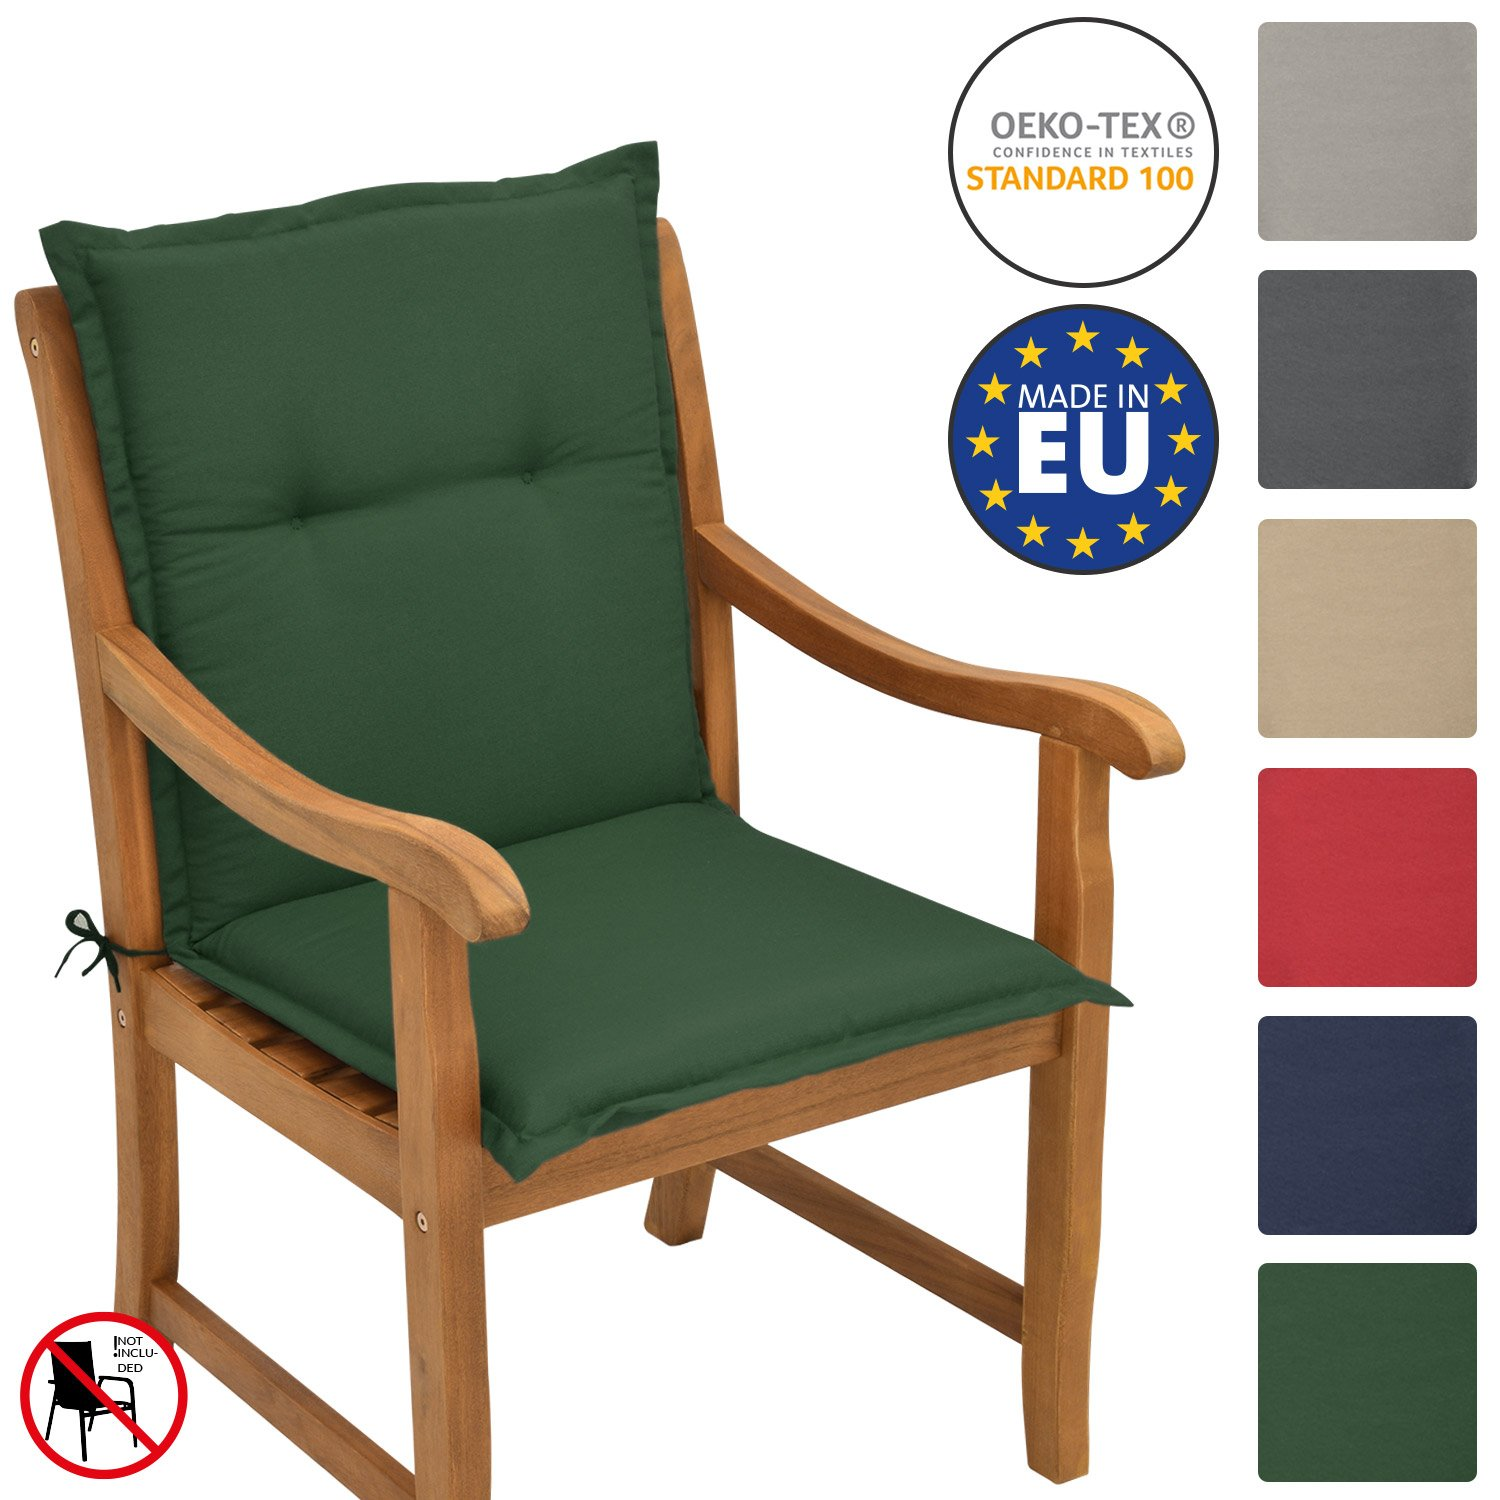 Beautissu Garden Chair Cushion Loft NL 100 x 50 x 6 cm Seatpad and Backrest with Soft Foamcore Padding Natural